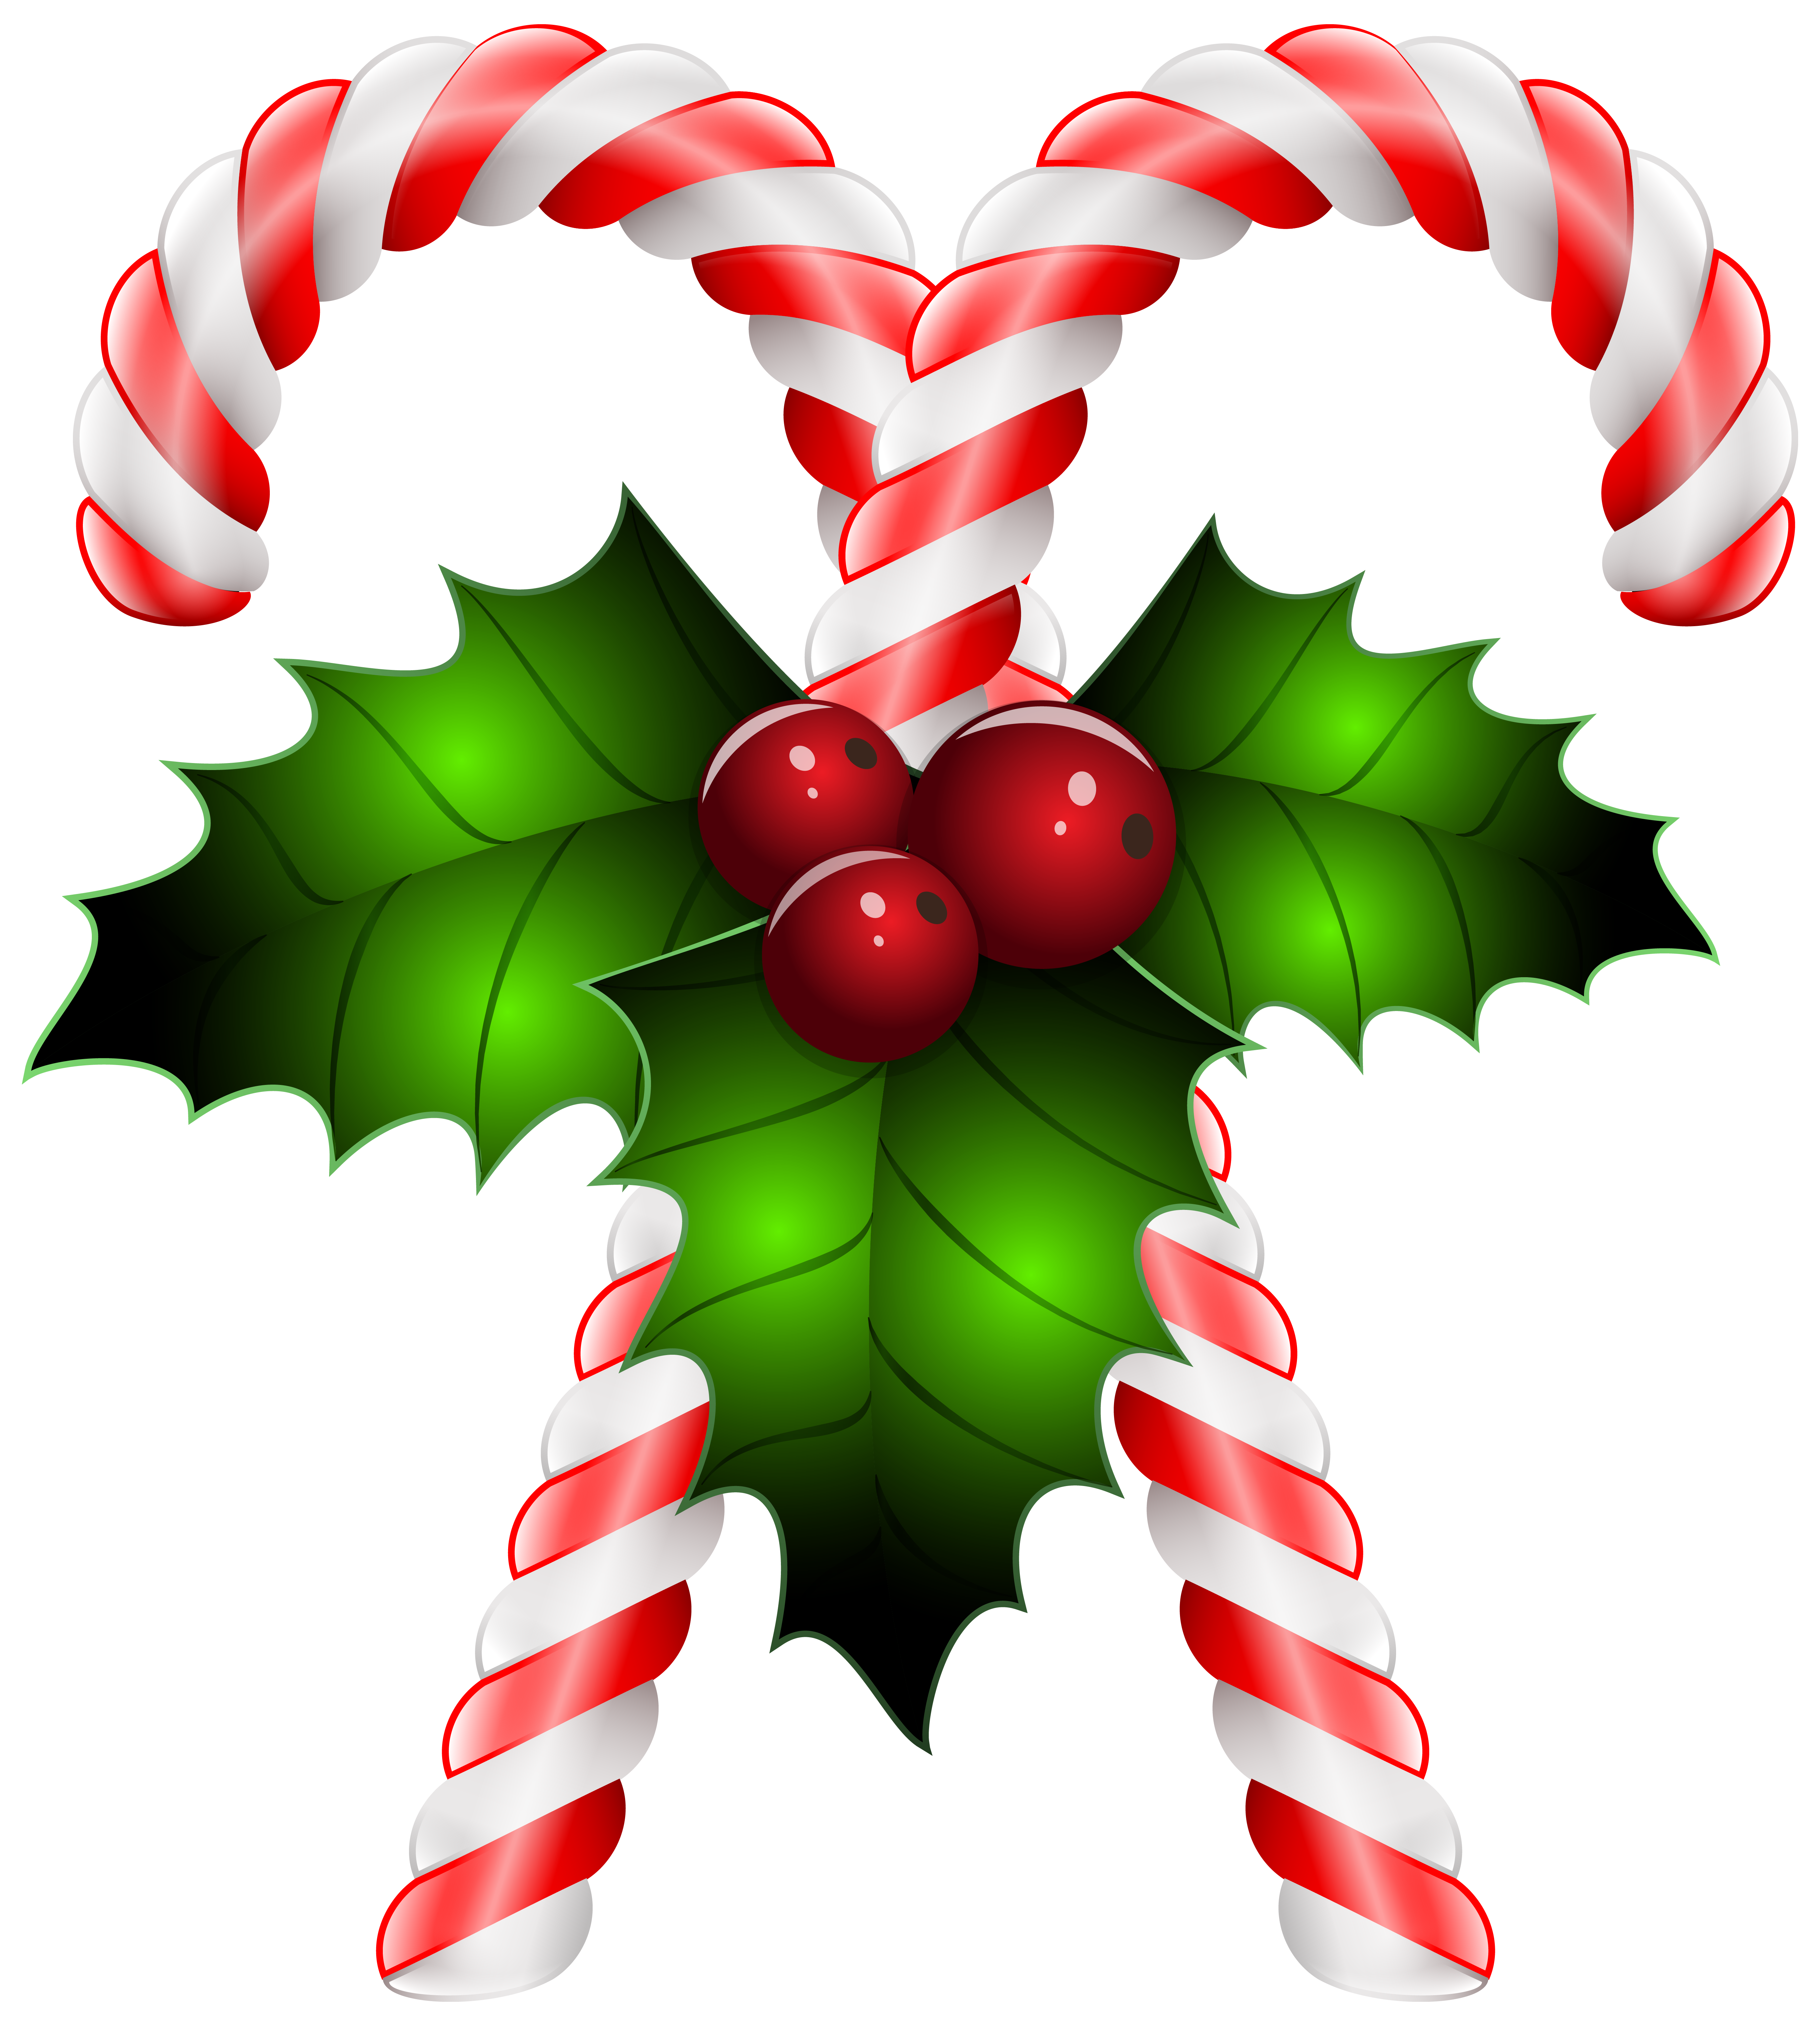 Holly clipart png. Candy canes with transparent